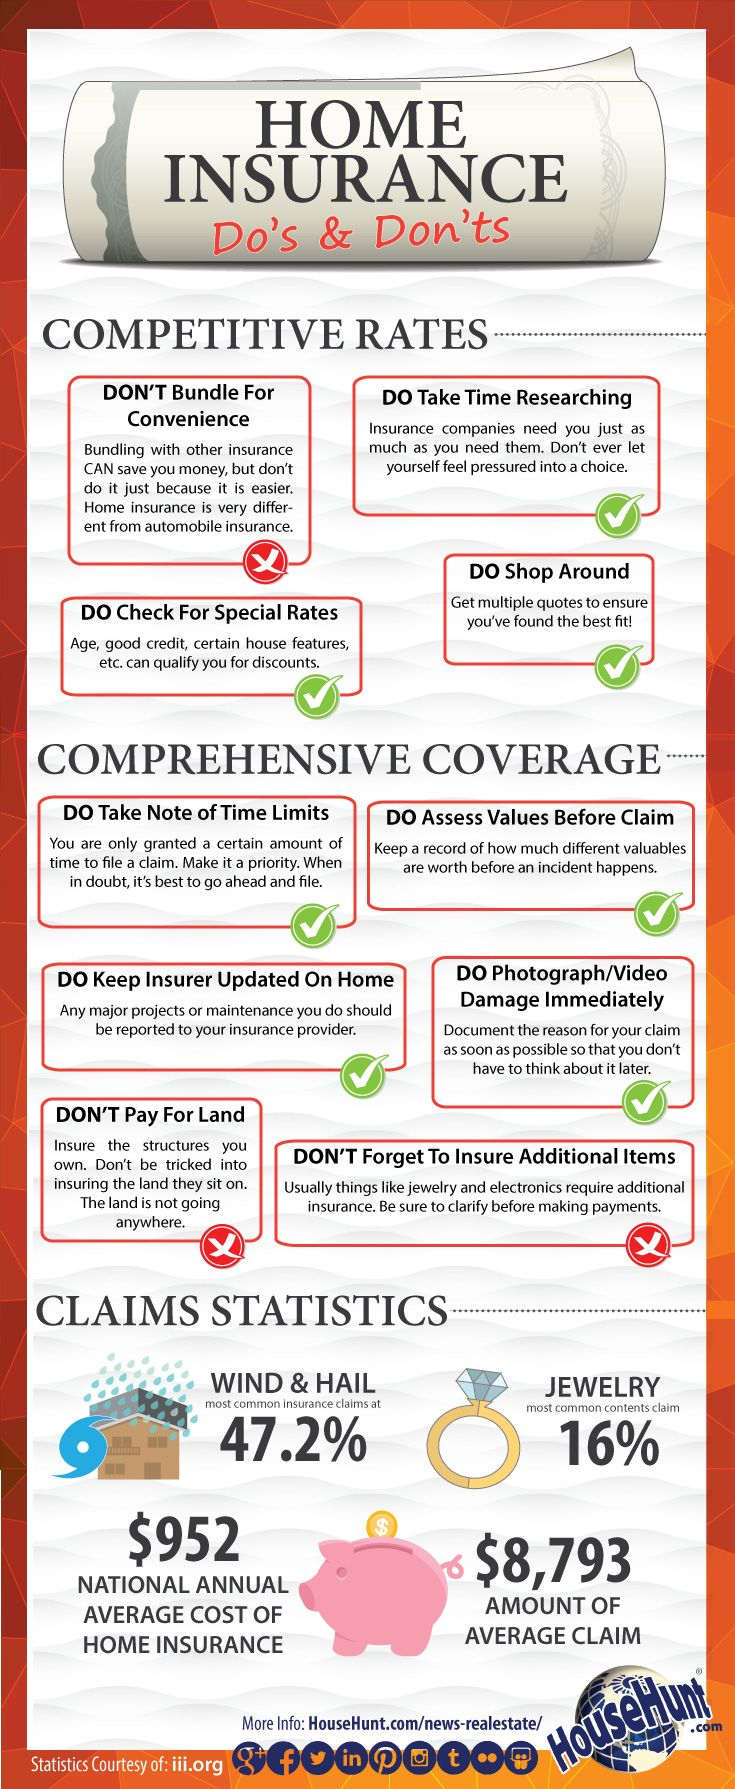 Home Insurance Do S And Don Ts Infographic With Images Home